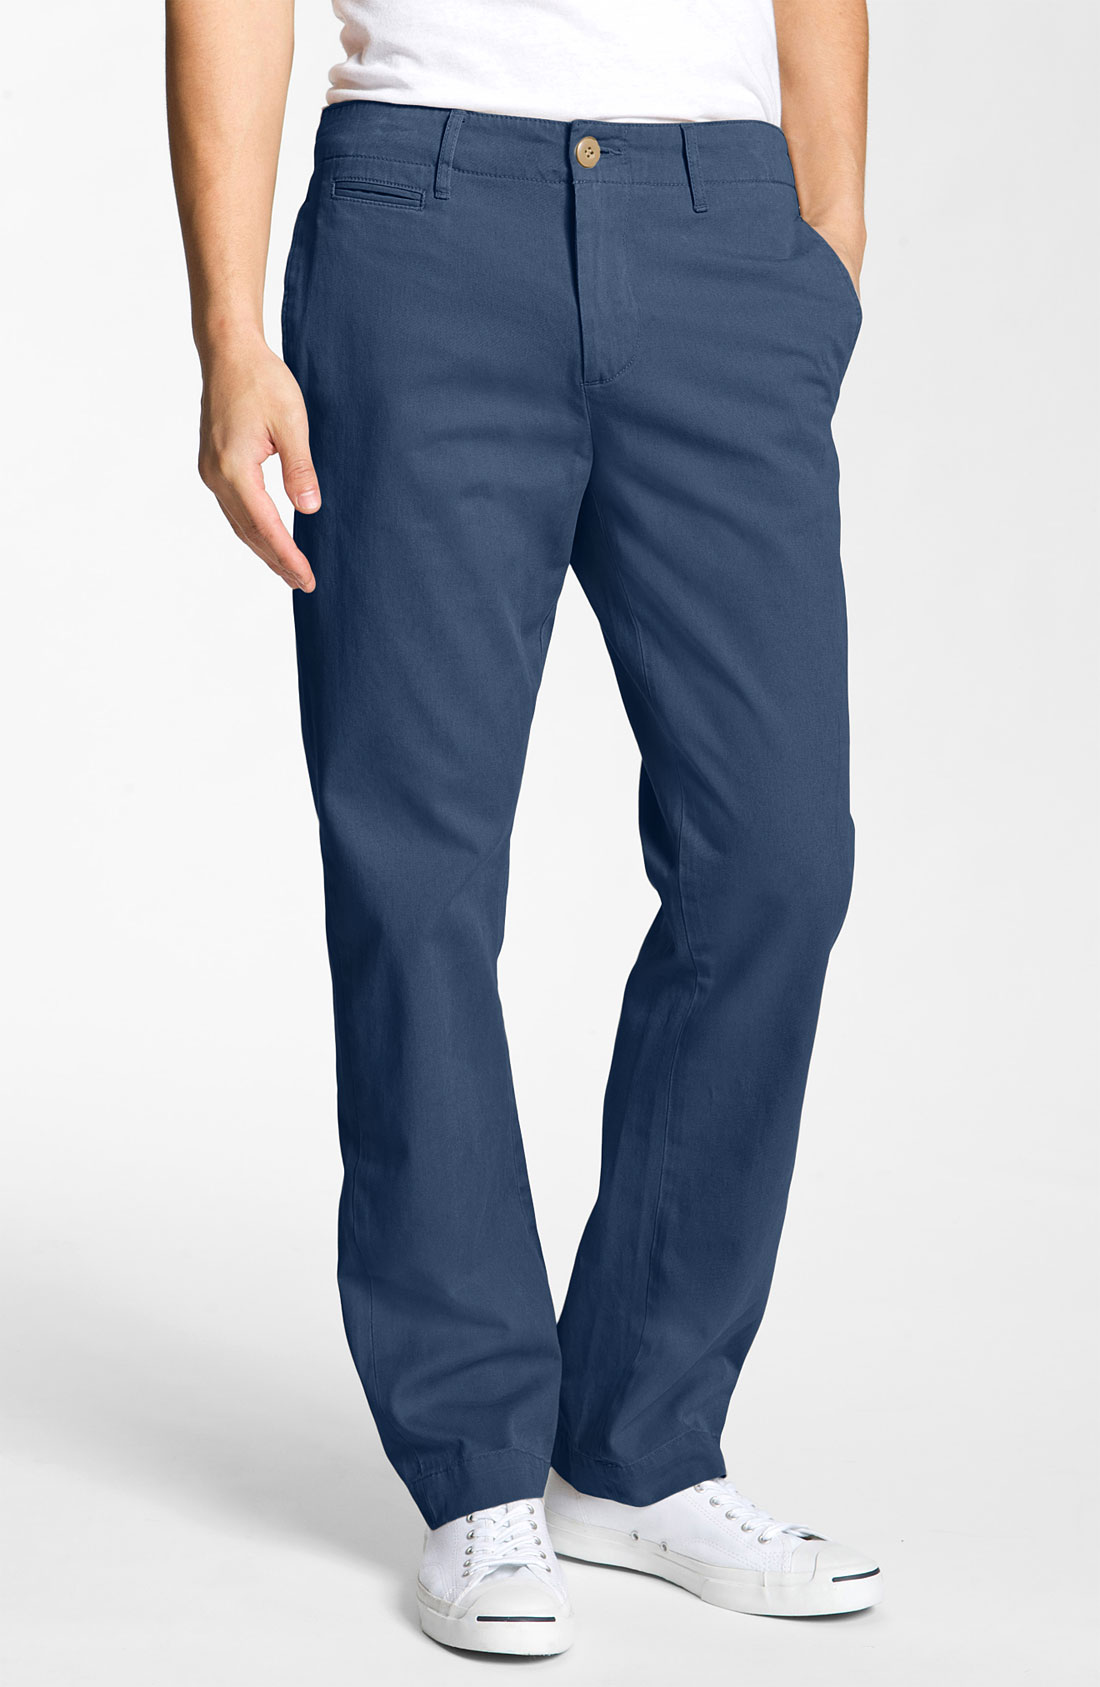 Shop men's designer pants, trousers, chinos & denim on the official Michael Kors site. Receive complimentary shipping & returns on your order. FREE GROUND .